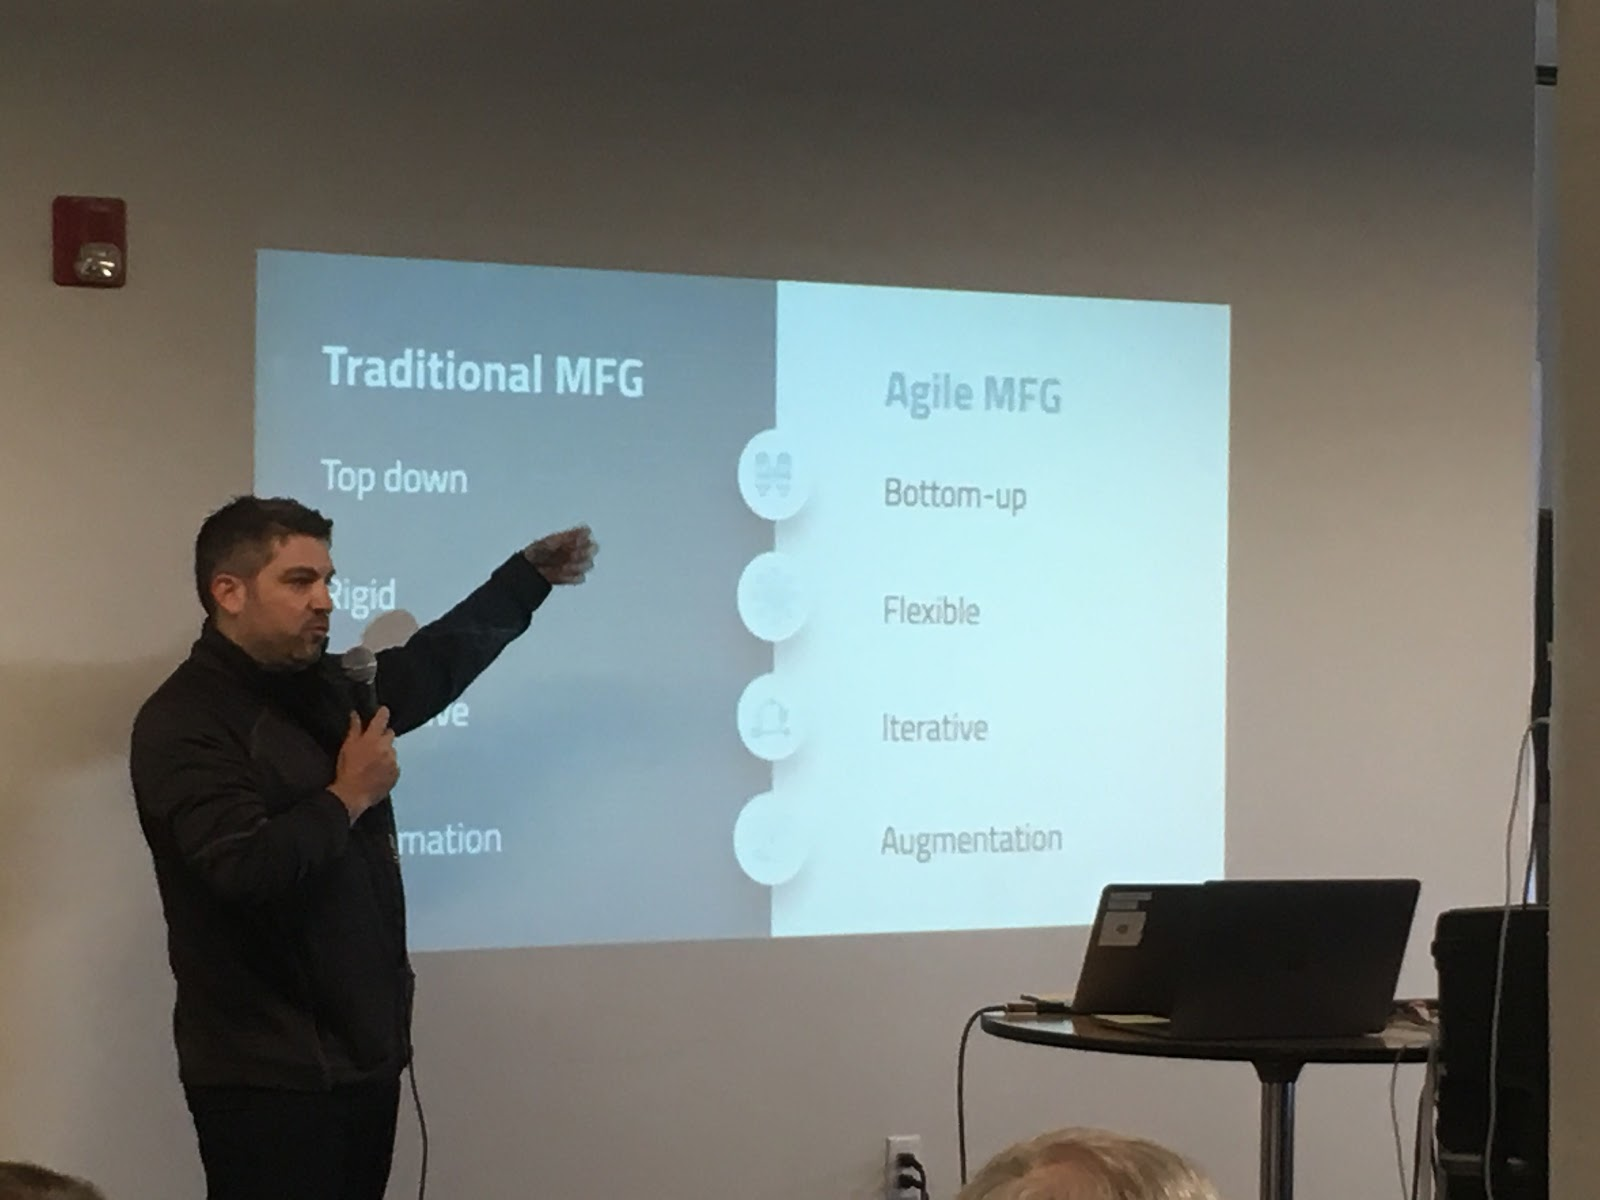 Tulip CEO Natan Linder describing agile MFG at Tulip's Agile MFG Summit